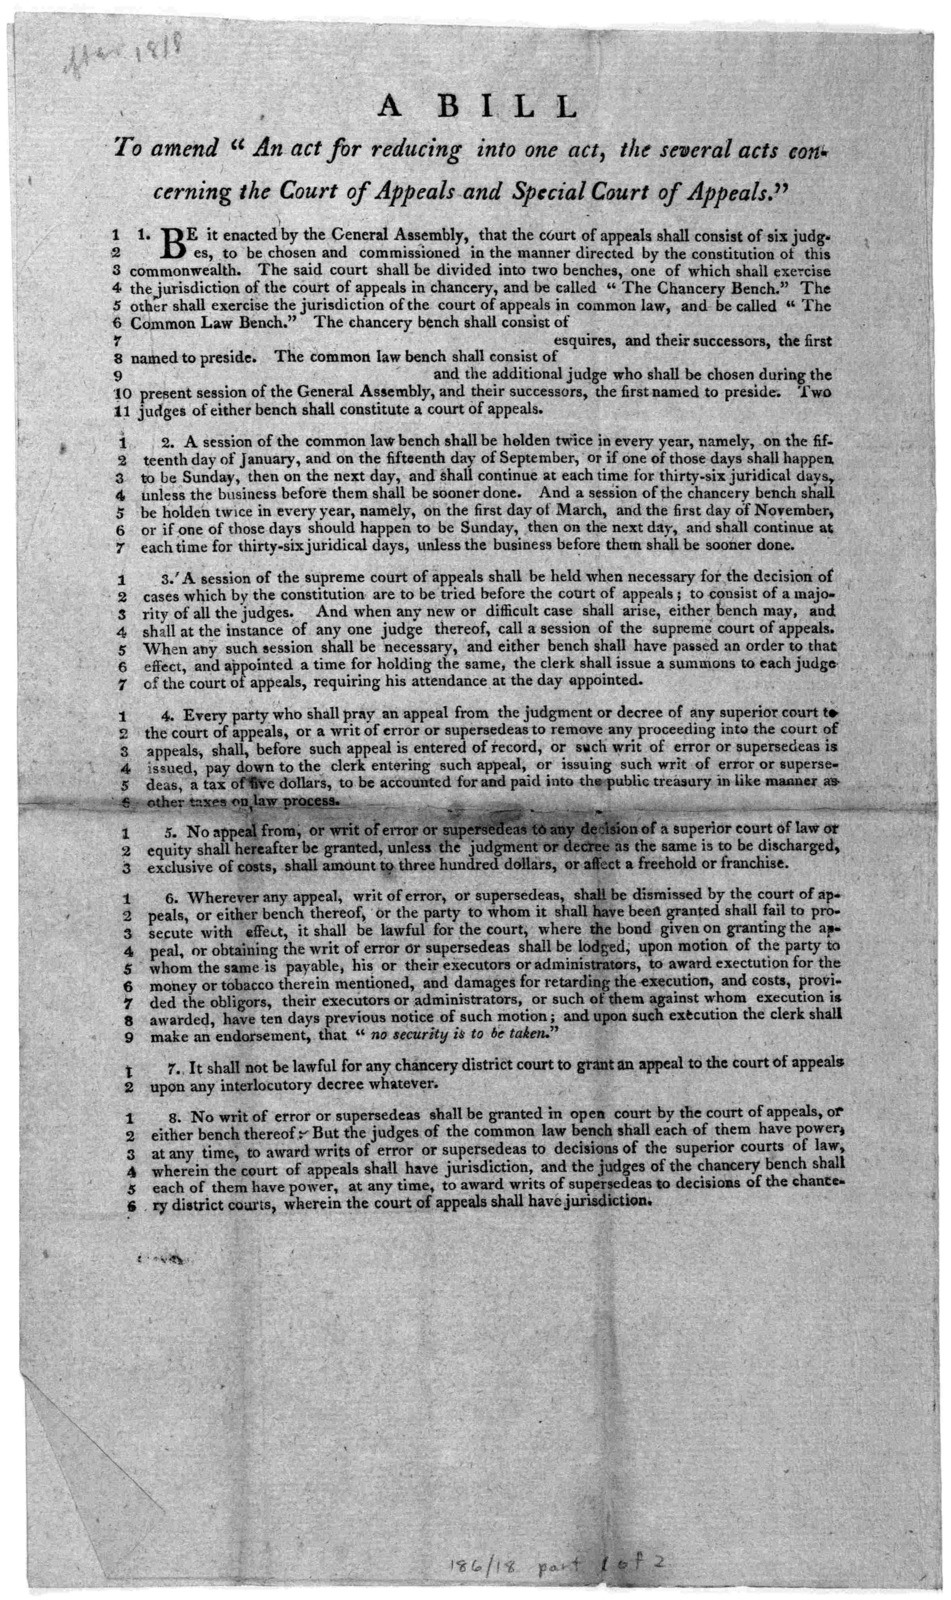 """A bill to amend """"An act for reducing into one act the several acts concerning the Court of Appeals and Special Court of Appeals."""" [Richmond, 1831]."""